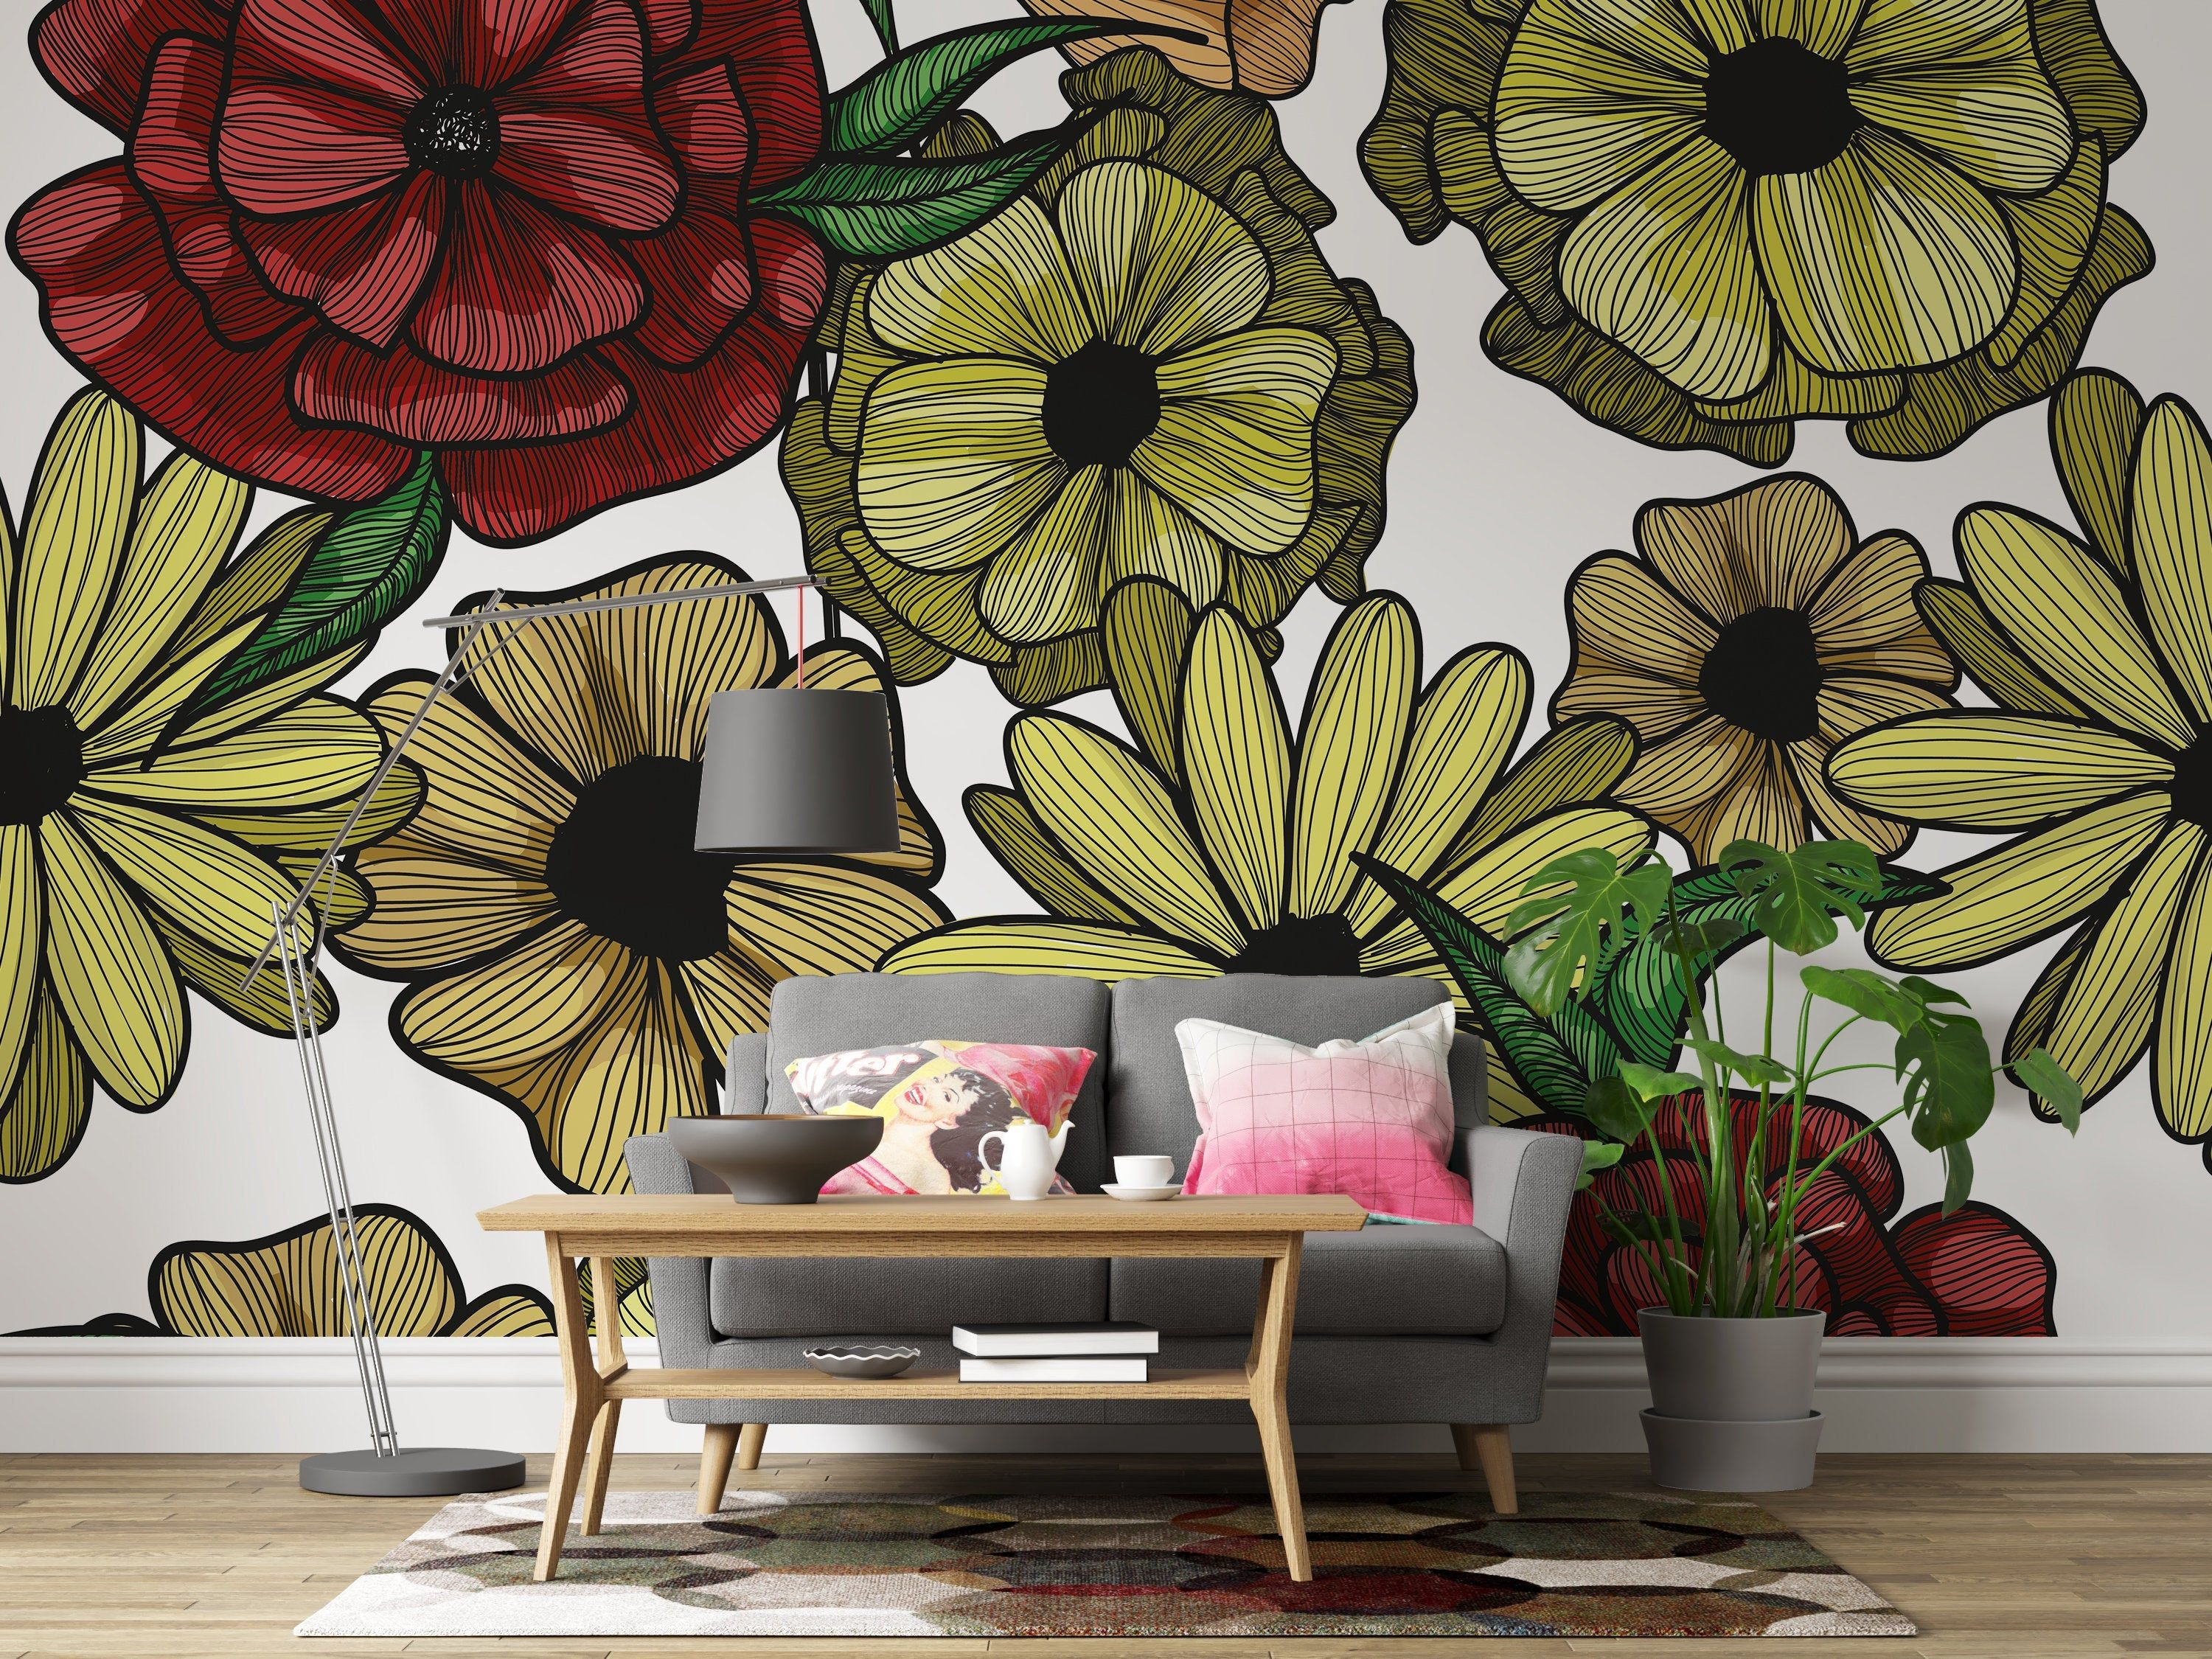 Removable Wallpaper Poppy Floral Peel And Stick Wallpaper Wall Mural Reusable Wall Art Self Adhesive Wallpaper Eco Friendly Removable Wallpaper Peel And Stick Wallpaper Old Wallpaper